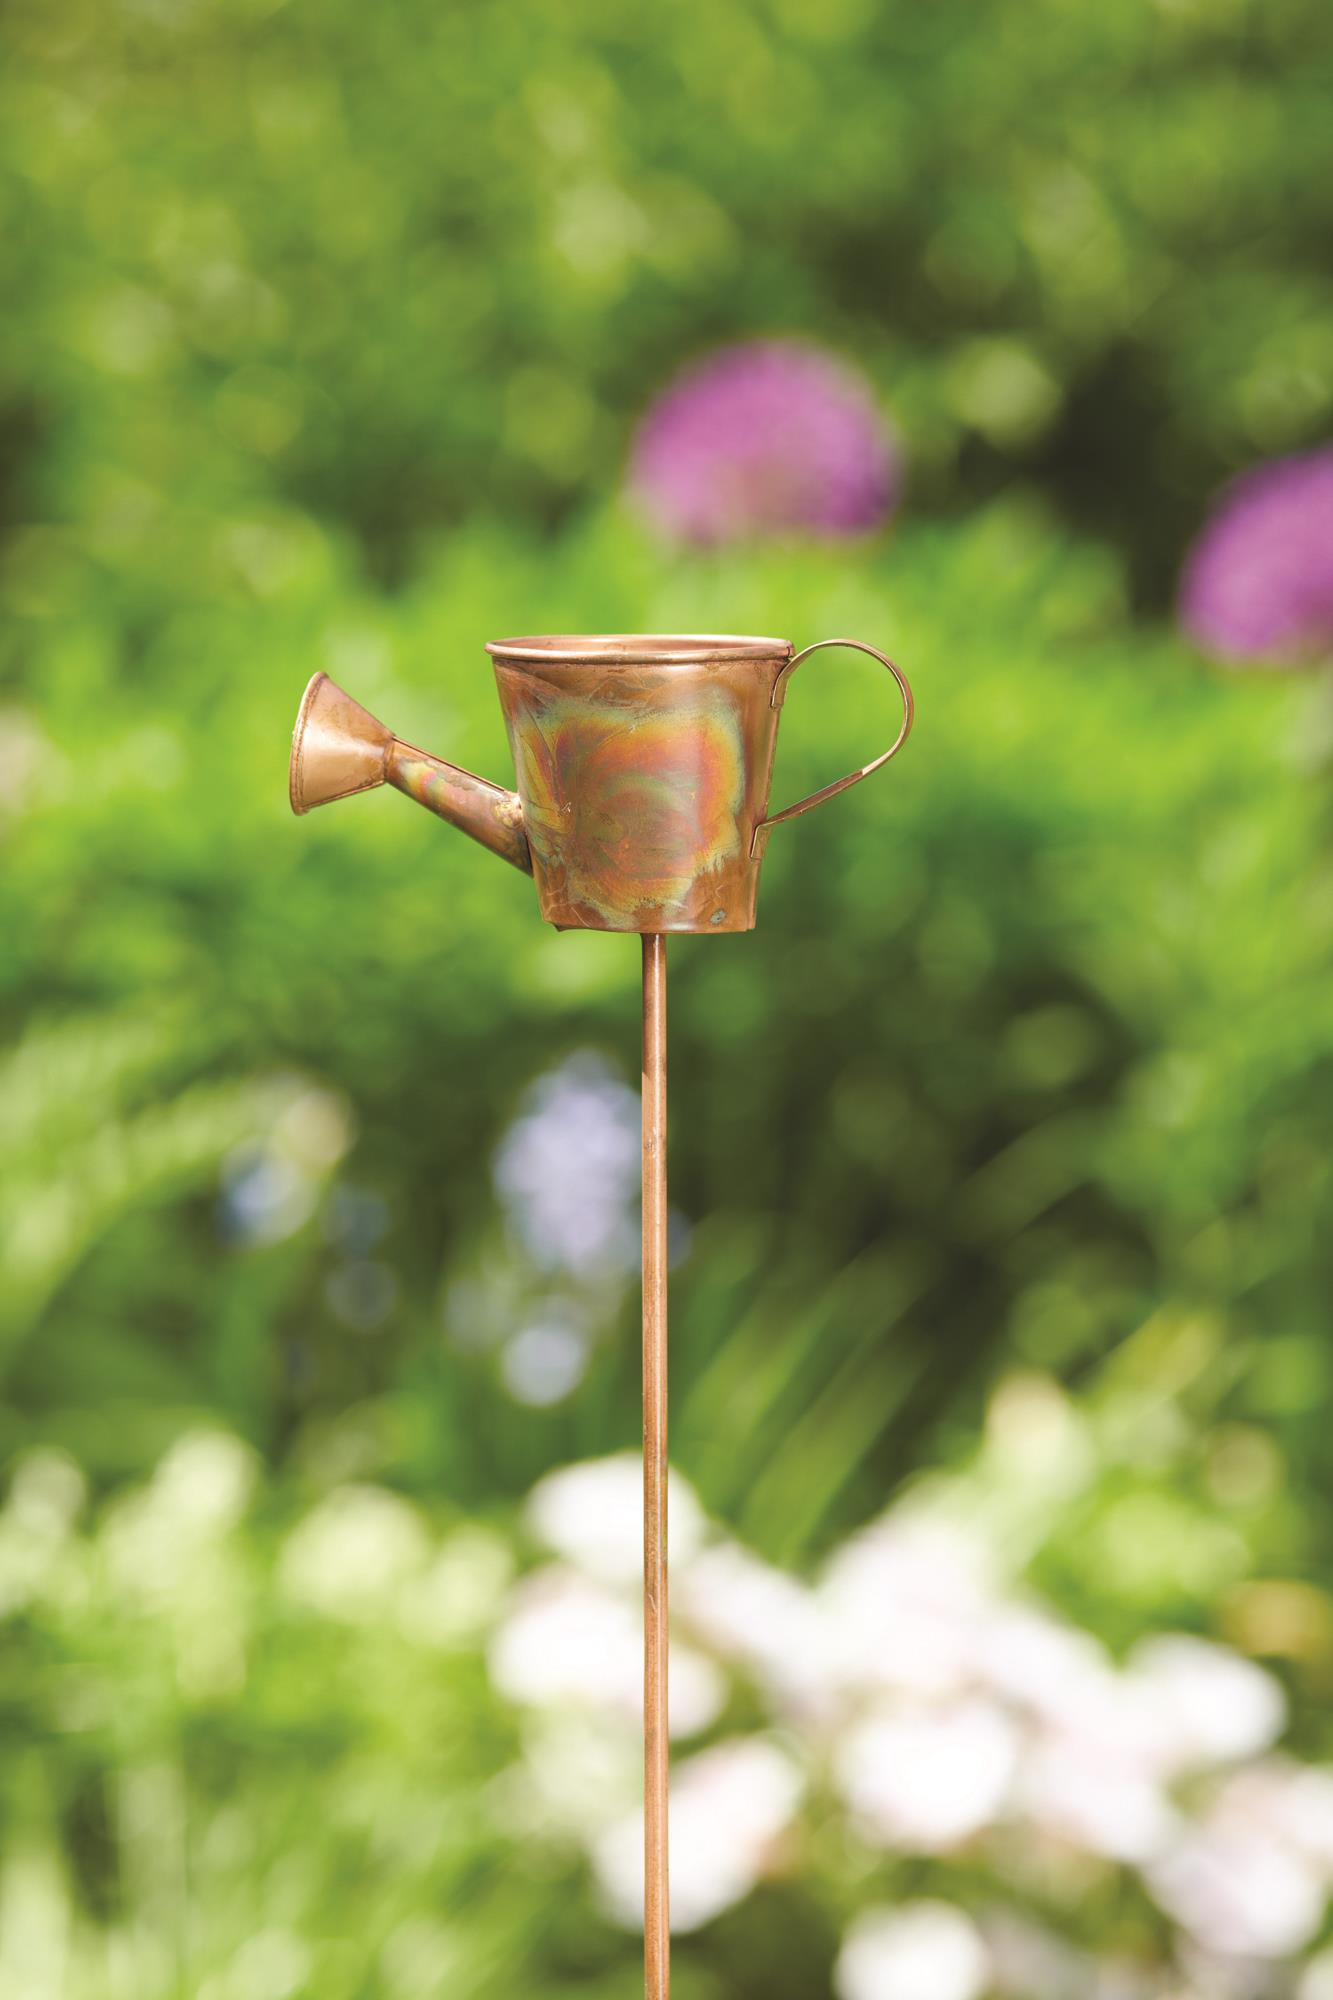 28 Flamed Watering Can Garden Stake 5x2.5x28 Inch. Pg.37   On